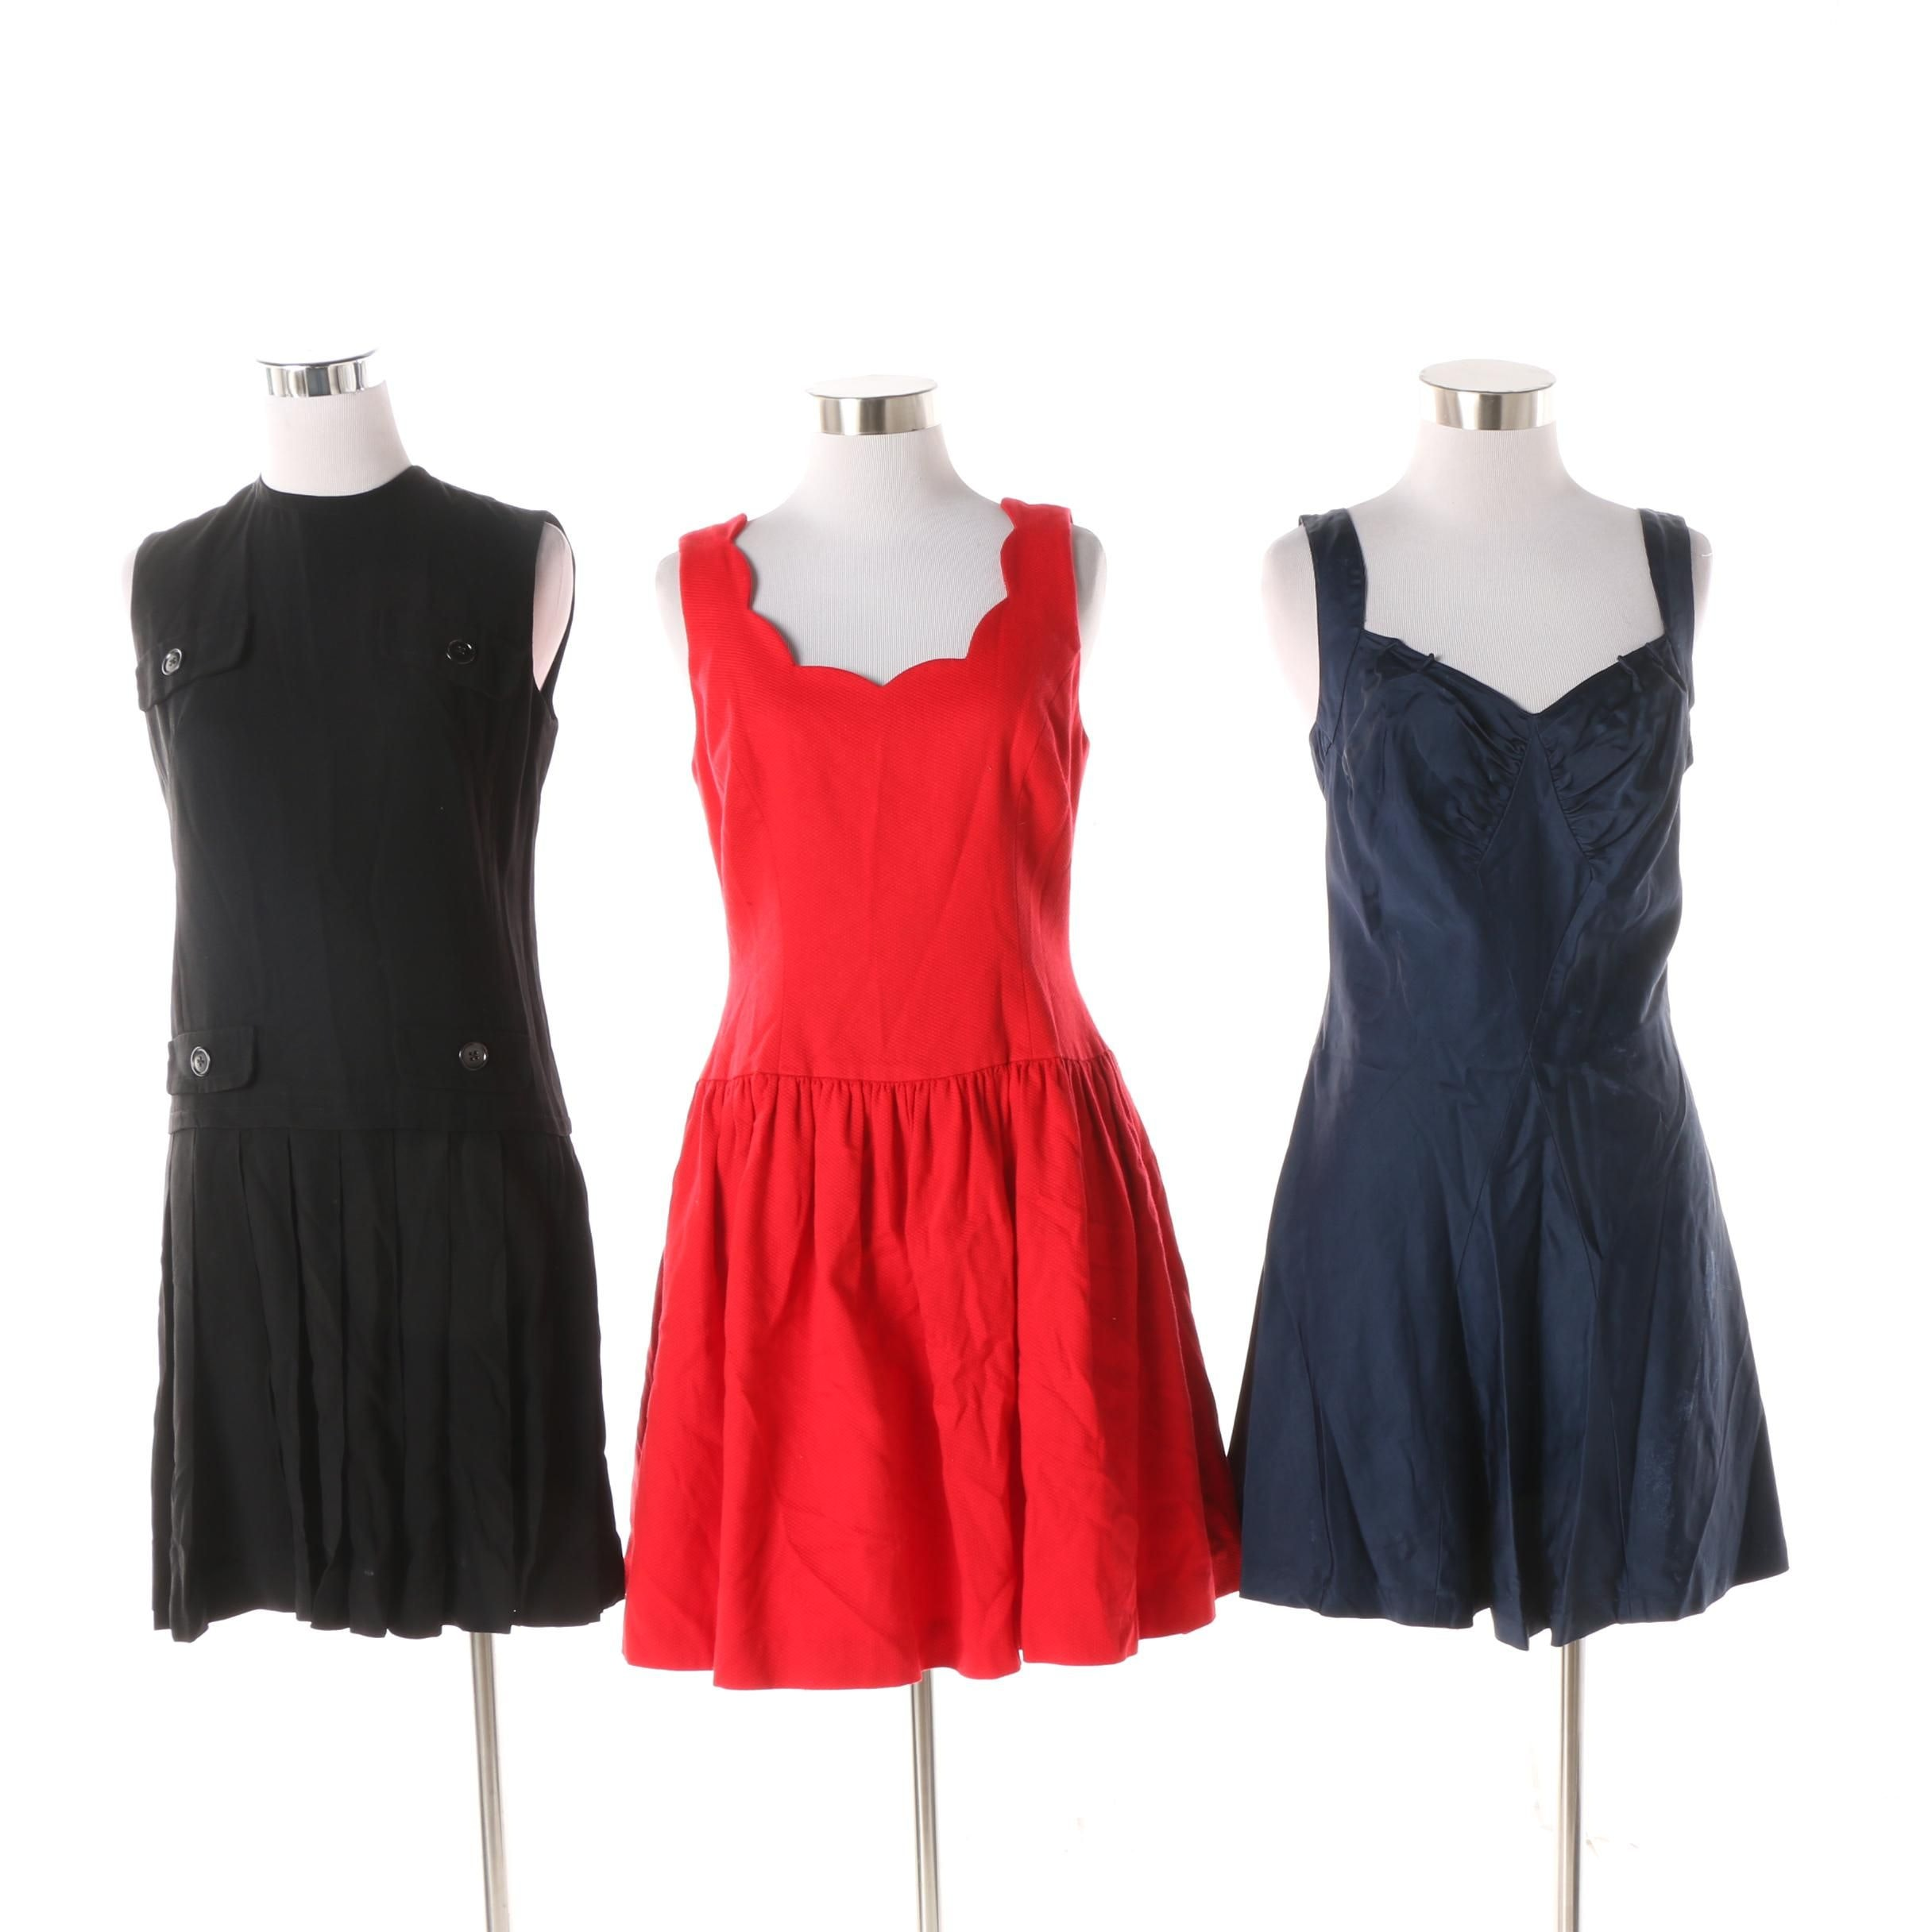 Women's Vintage Drop Waist Dress, Swimsuit and Fit and Flare Dress